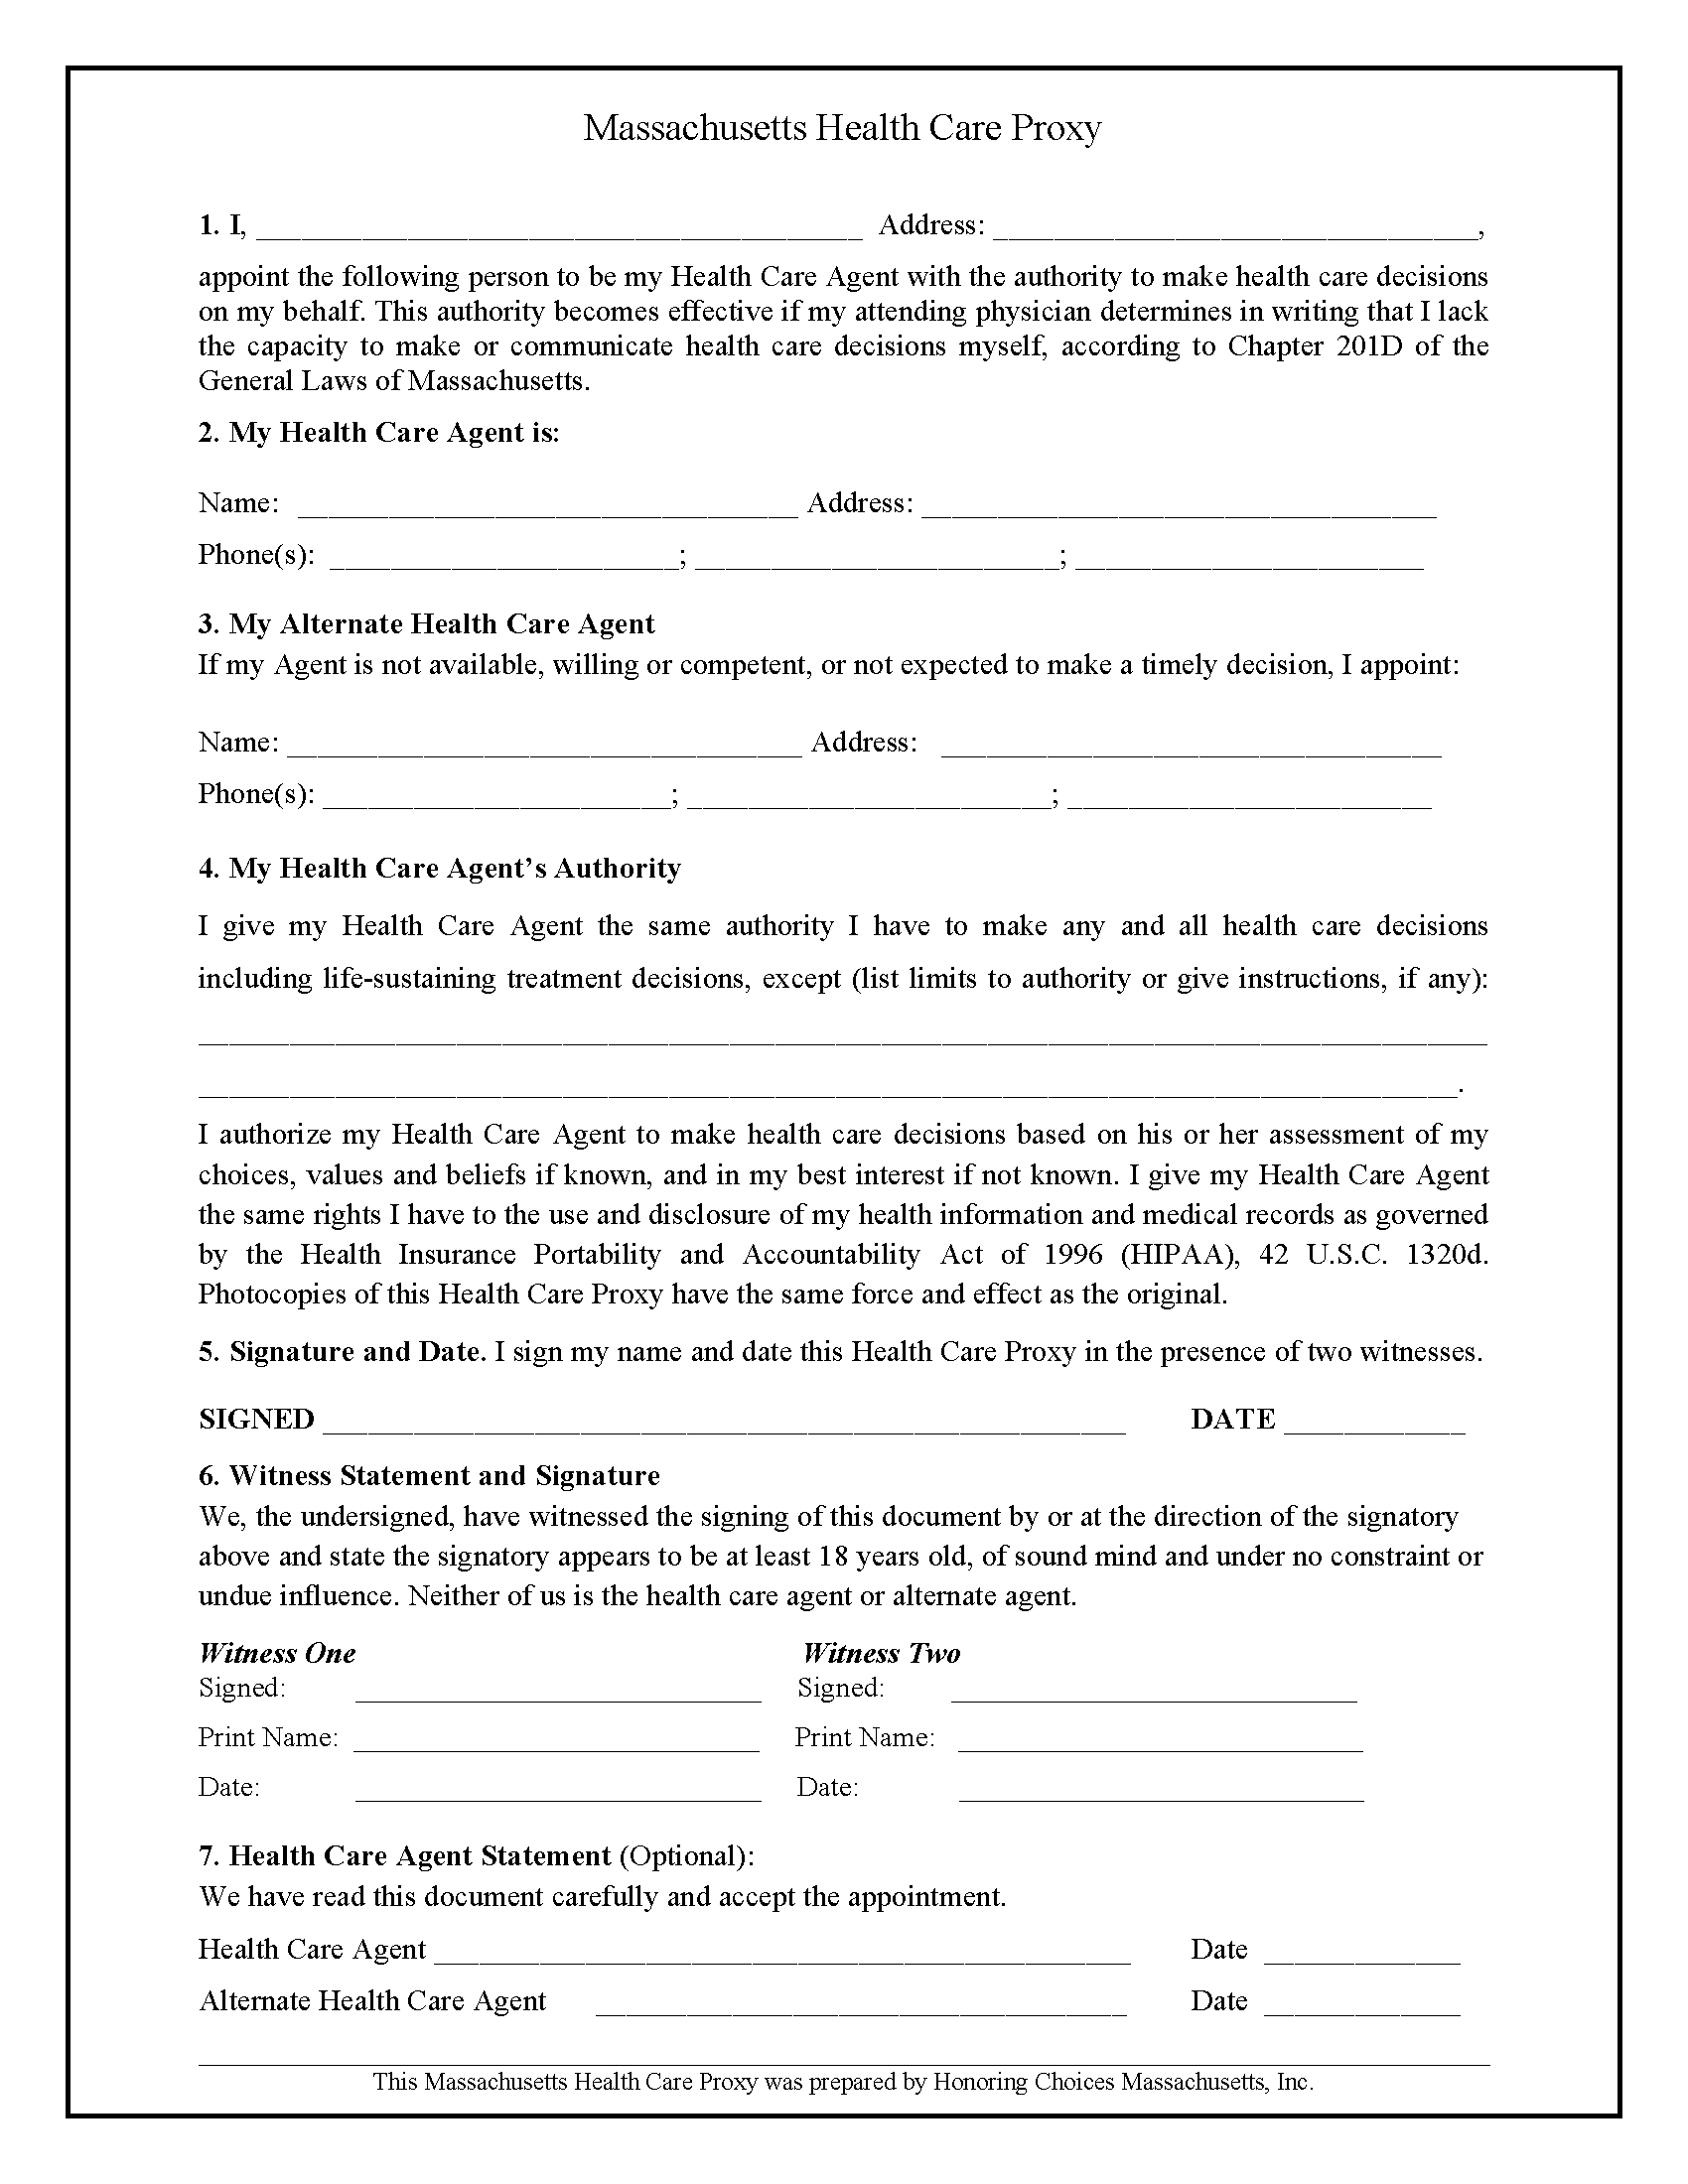 Massachusetts Medical Power of Attorney Form